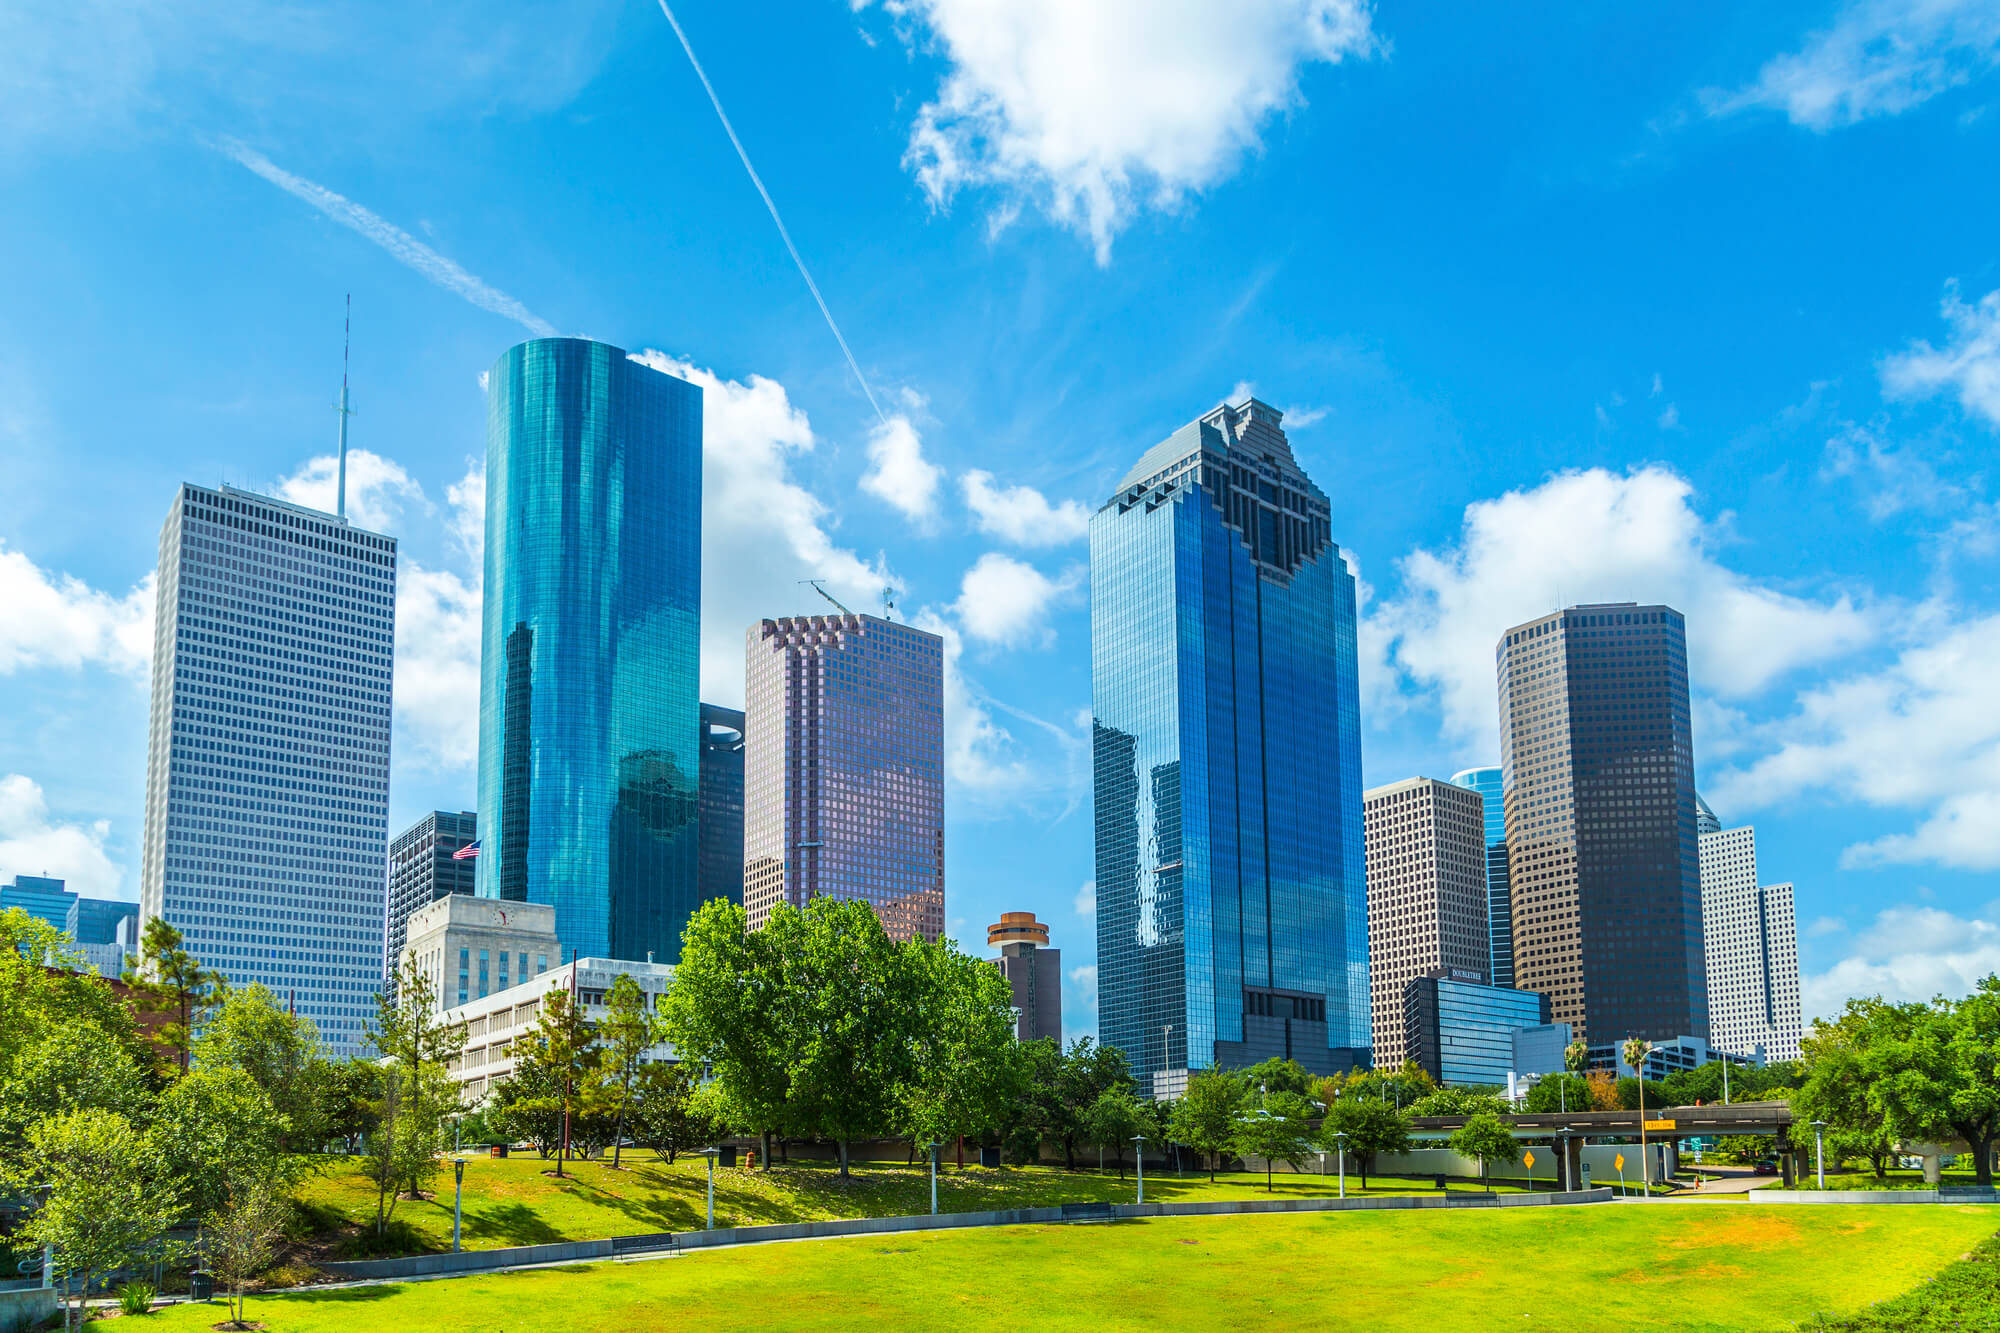 Skyline of Houston against blue skies